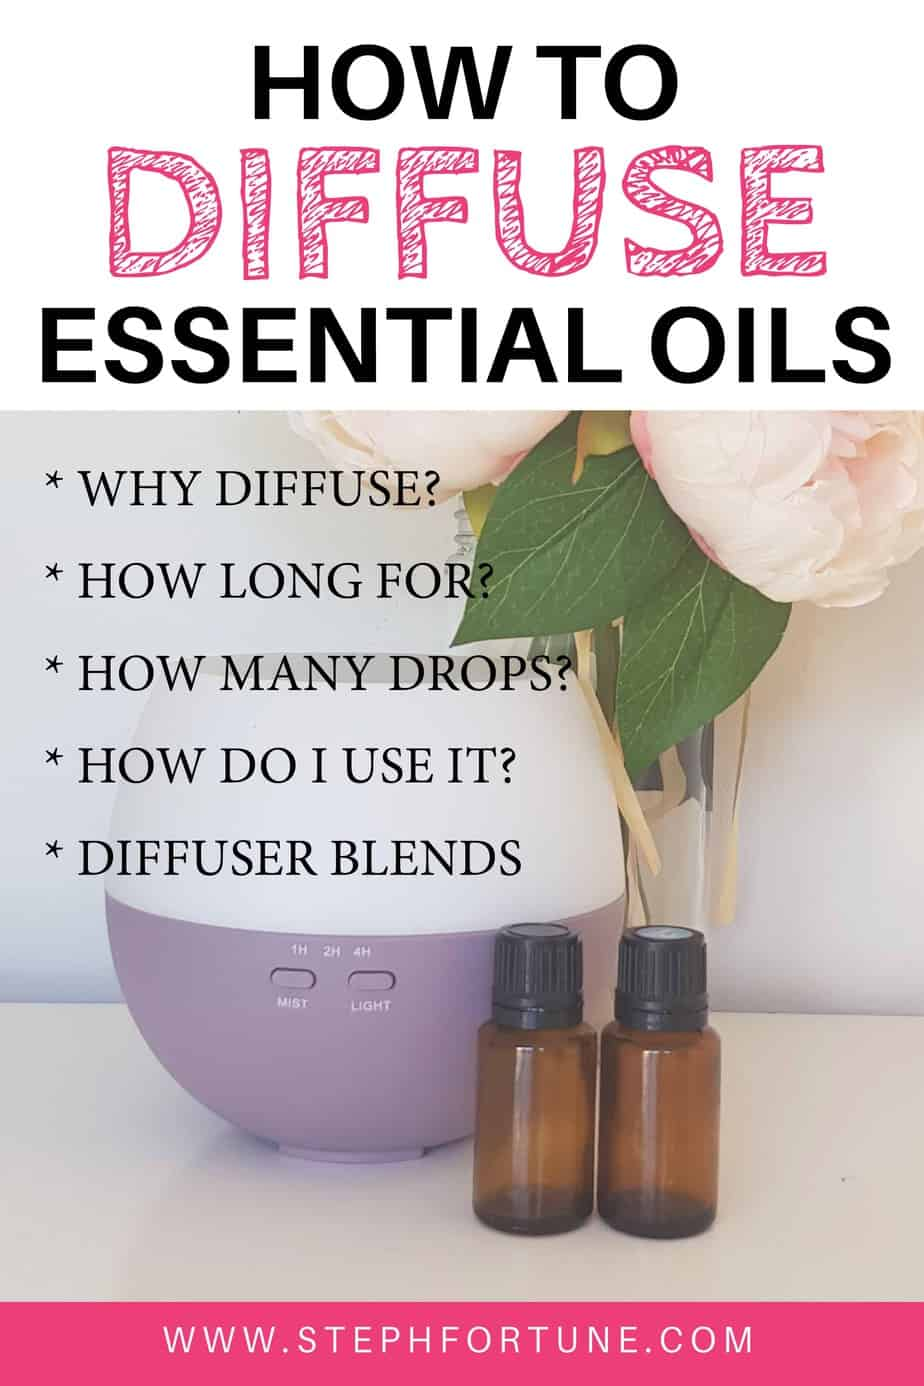 How to Use an Essential Oil Diffuser * Why diffuse? * How long for? * How many drops? * How do i use it? * Diffuser blends